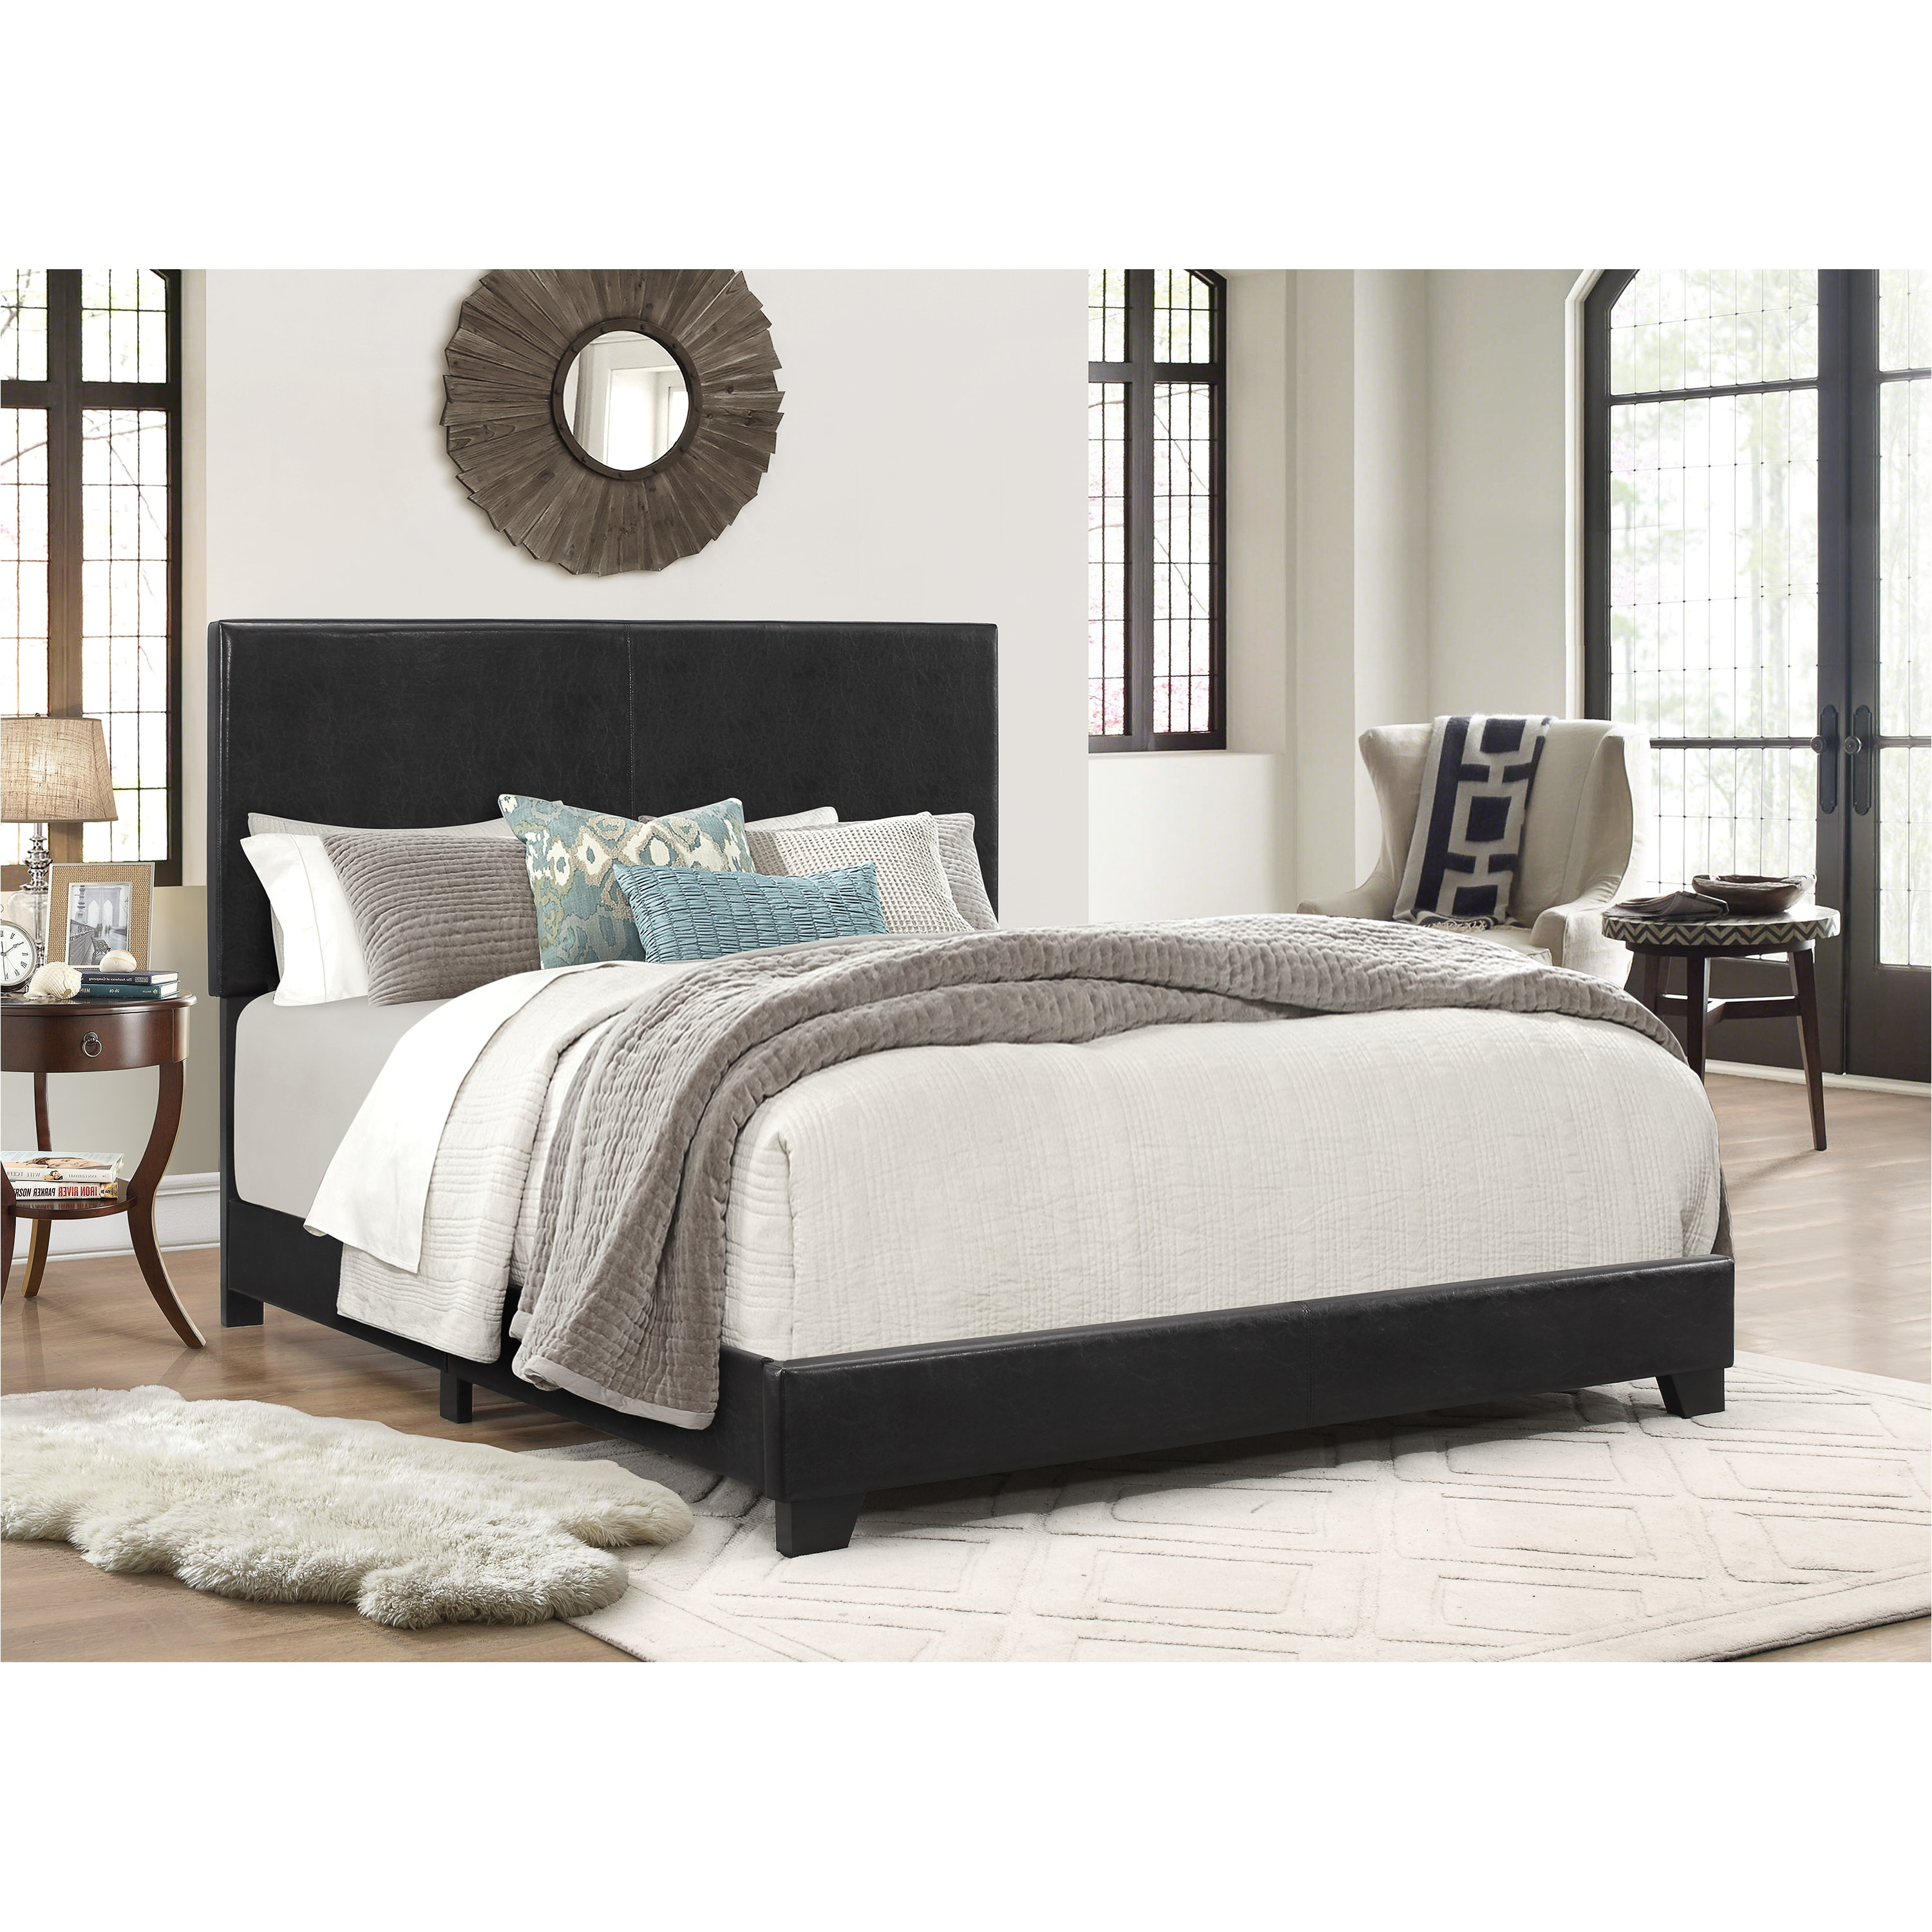 crown mark erin upholstered panel bed lmdw1088